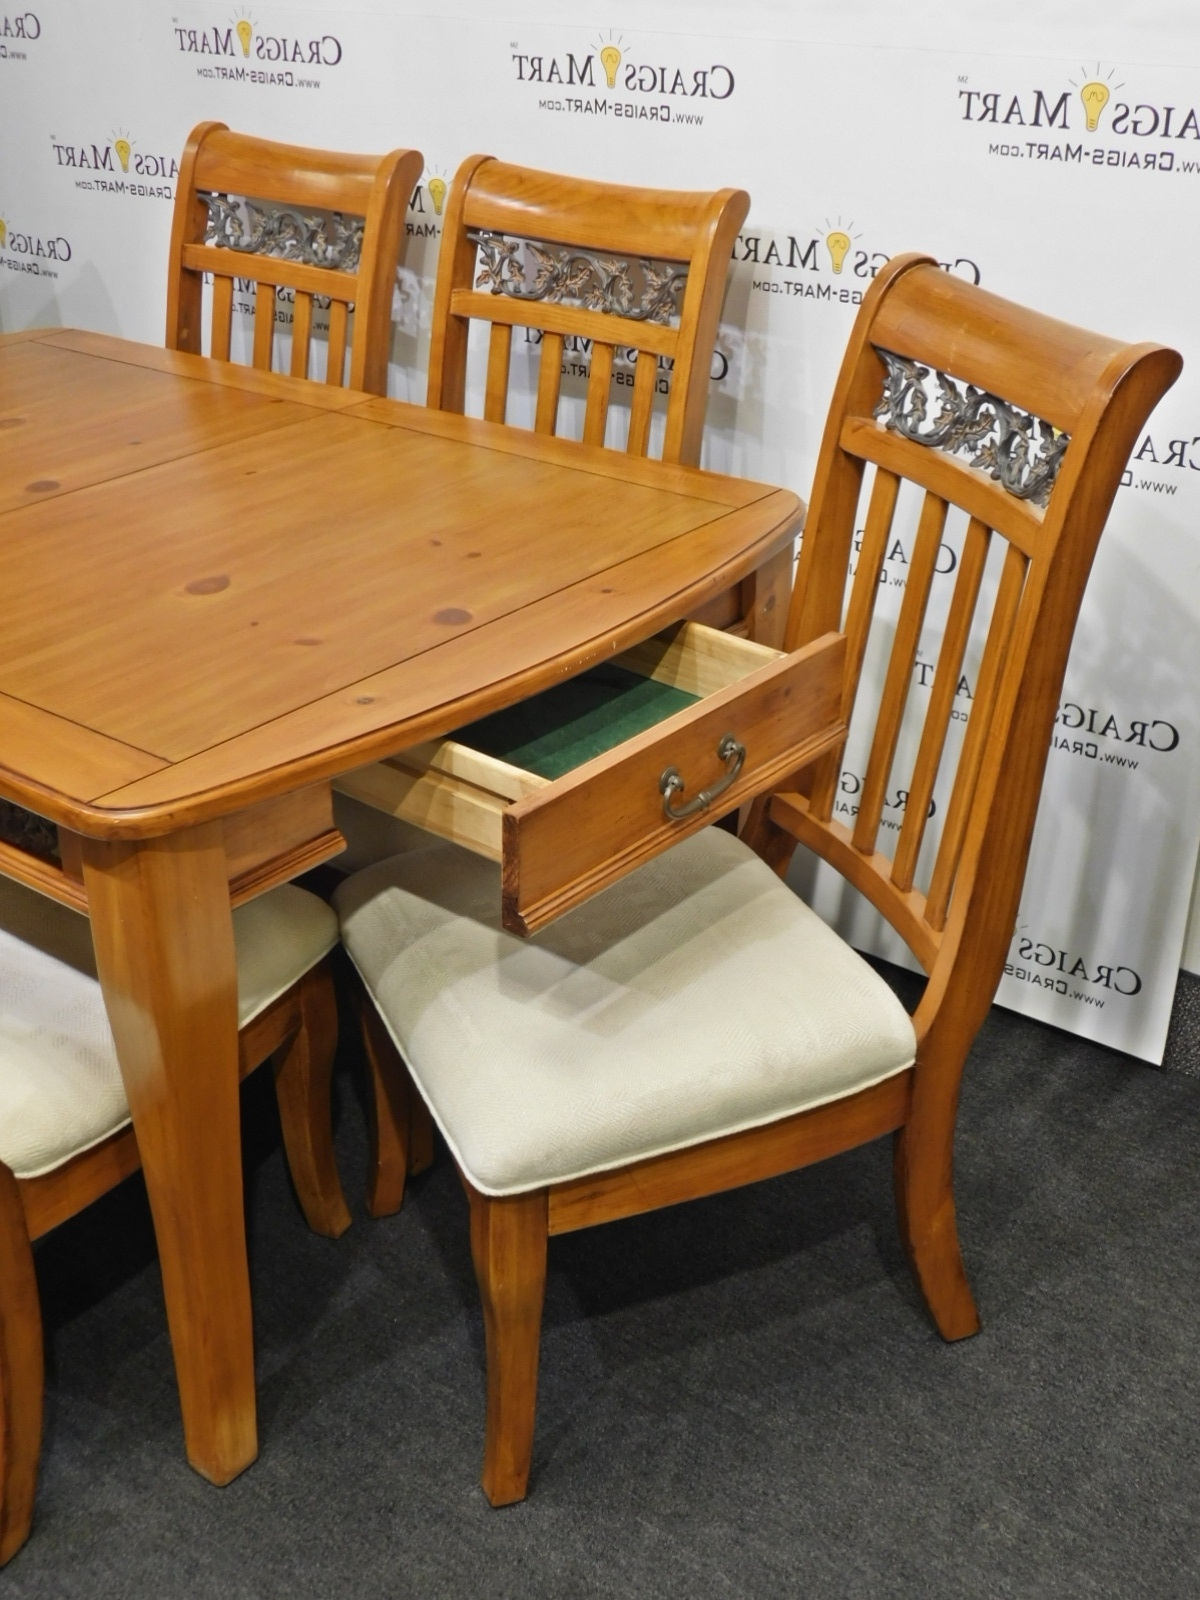 Dining Tables And 8 Chairs With Regard To 2018 Dining Table With 8 Chairs And Leaf (View 20 of 25)